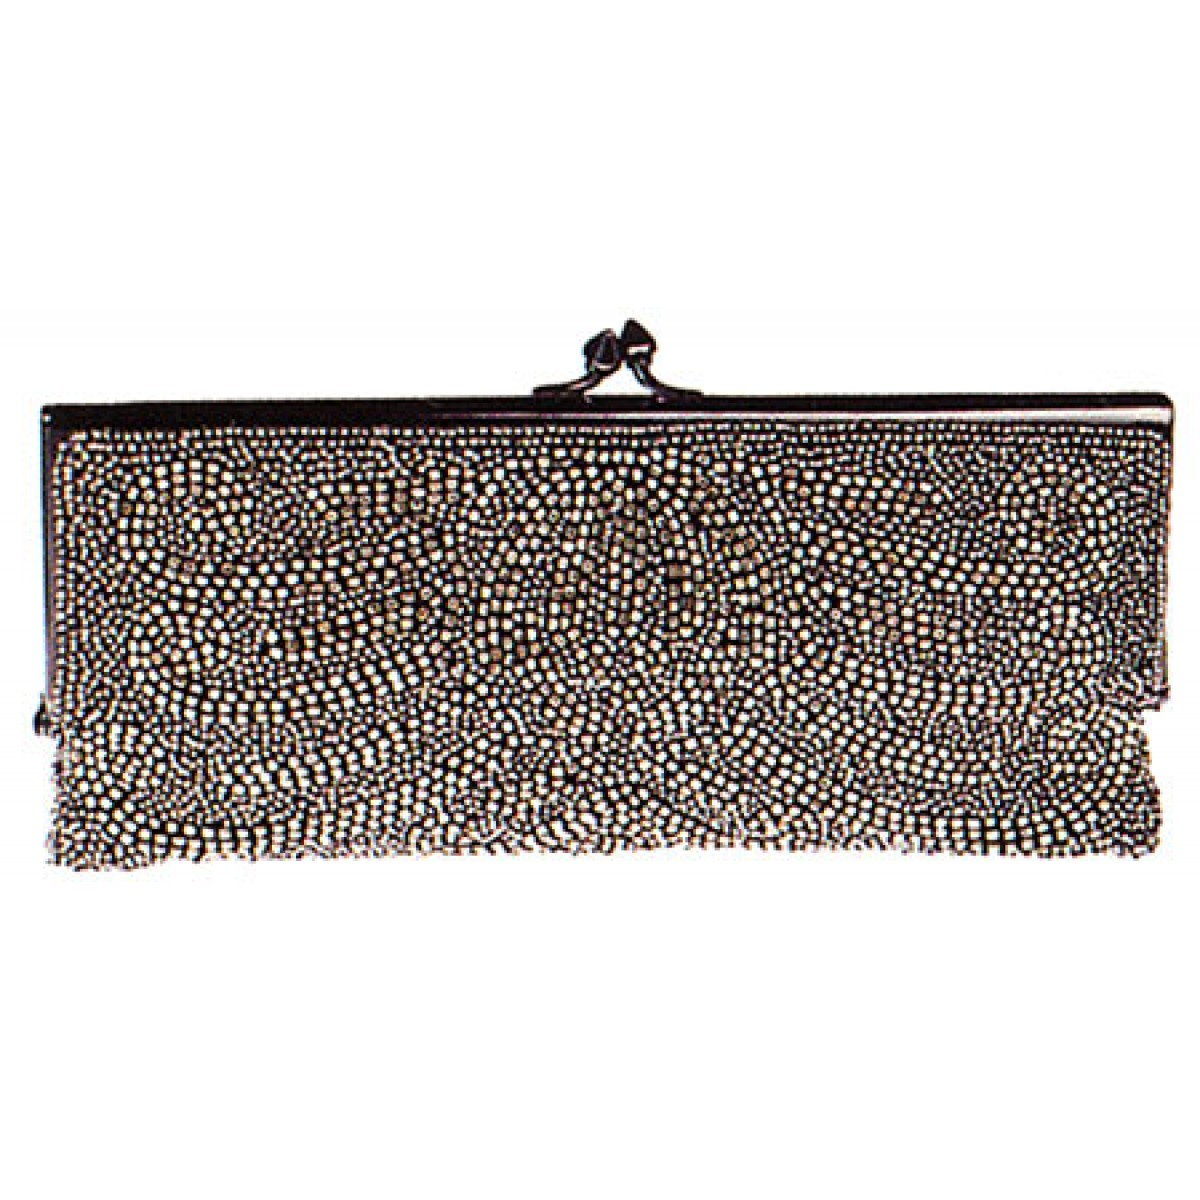 Antique Hand Beaded Clutch